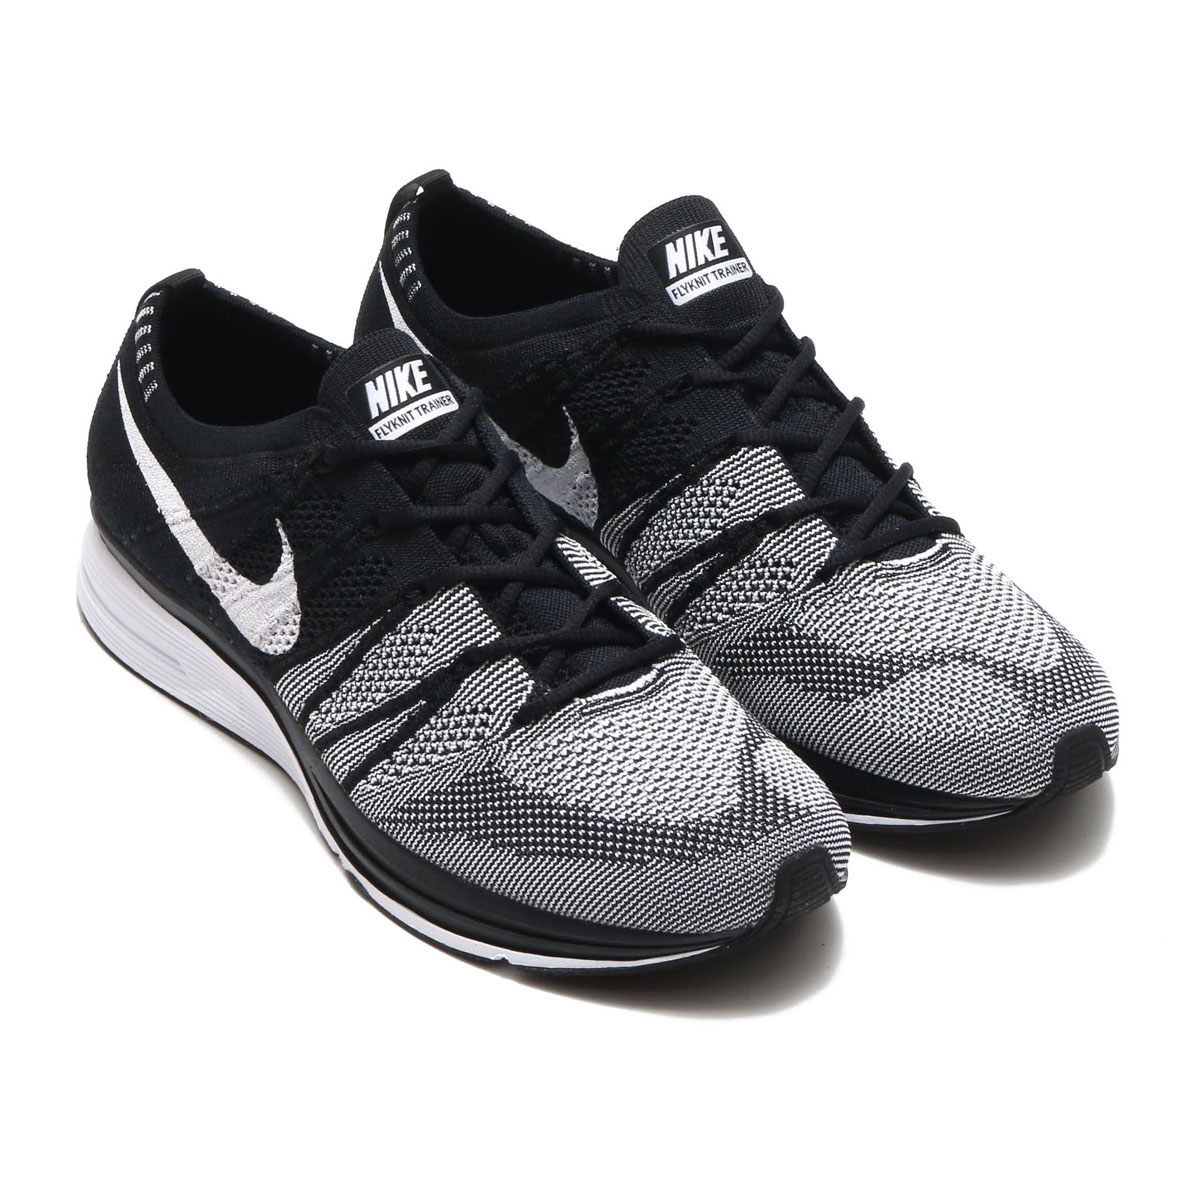 c580fcbb674a61 NIKE FLYKNIT TRAINER (Nike fried food knit trainer) (BLACK WHITE-WHITE) 18SP -S